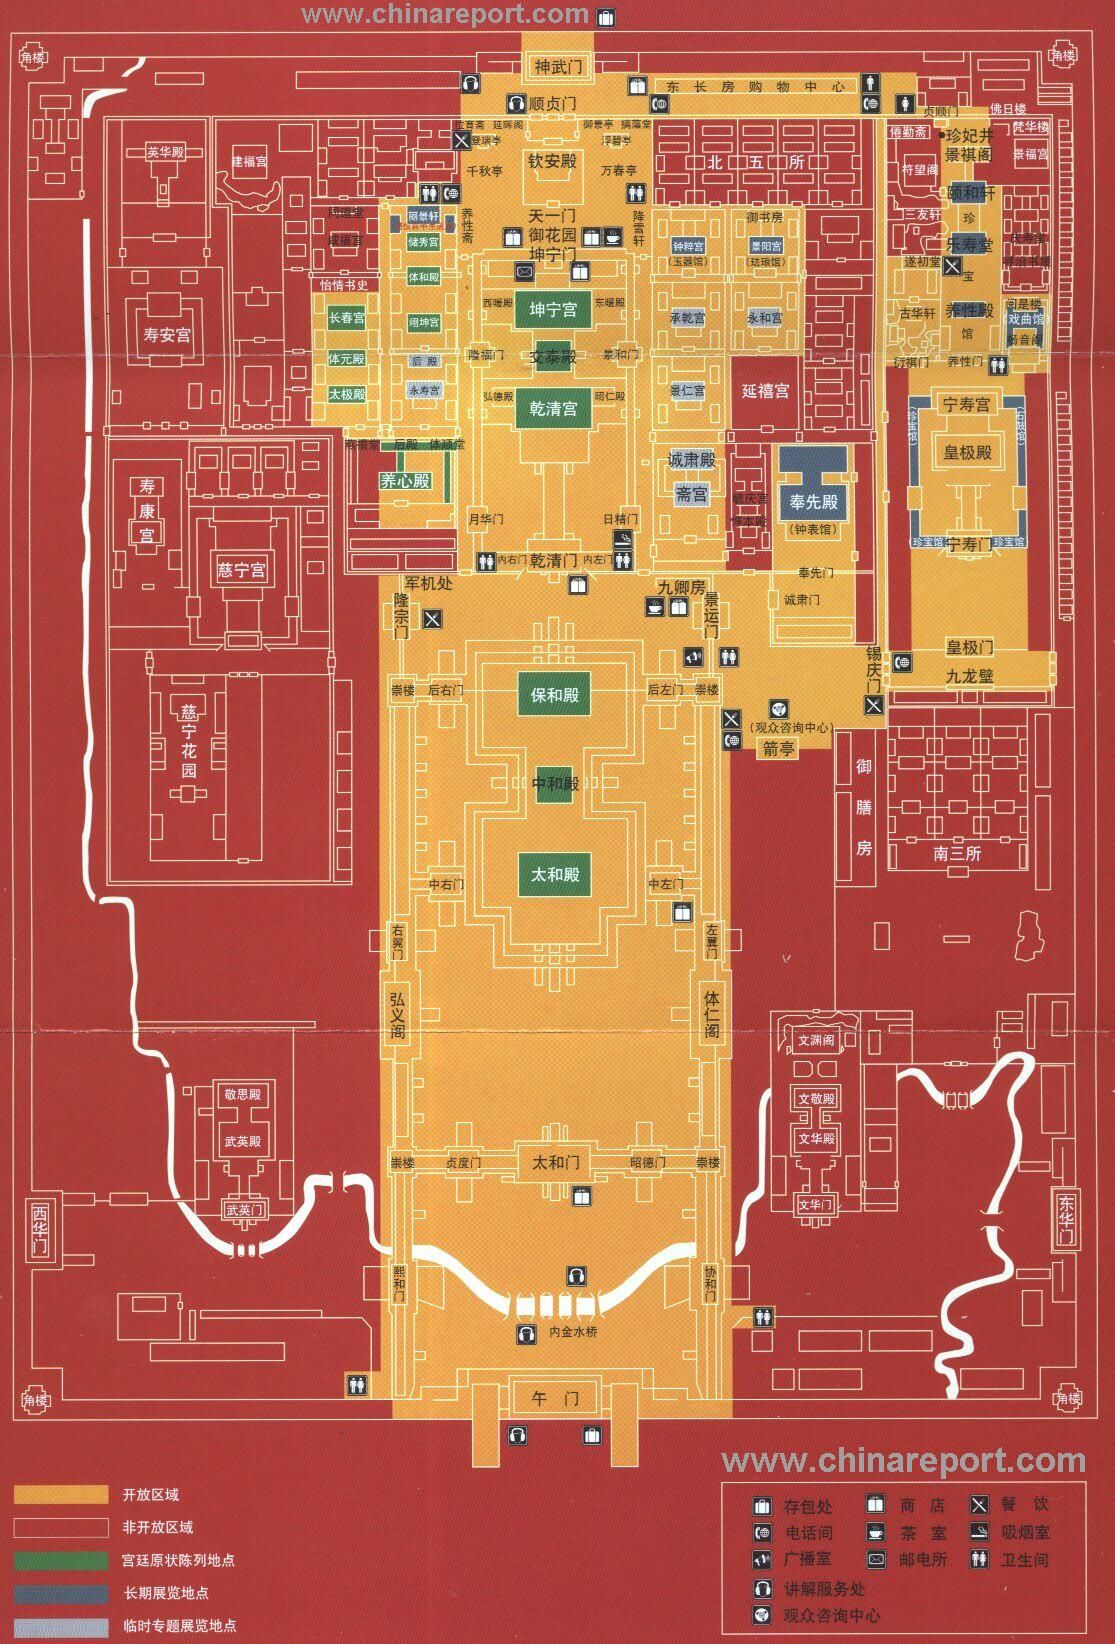 Forbidden City Map Beijing China Pinterest City maps City and